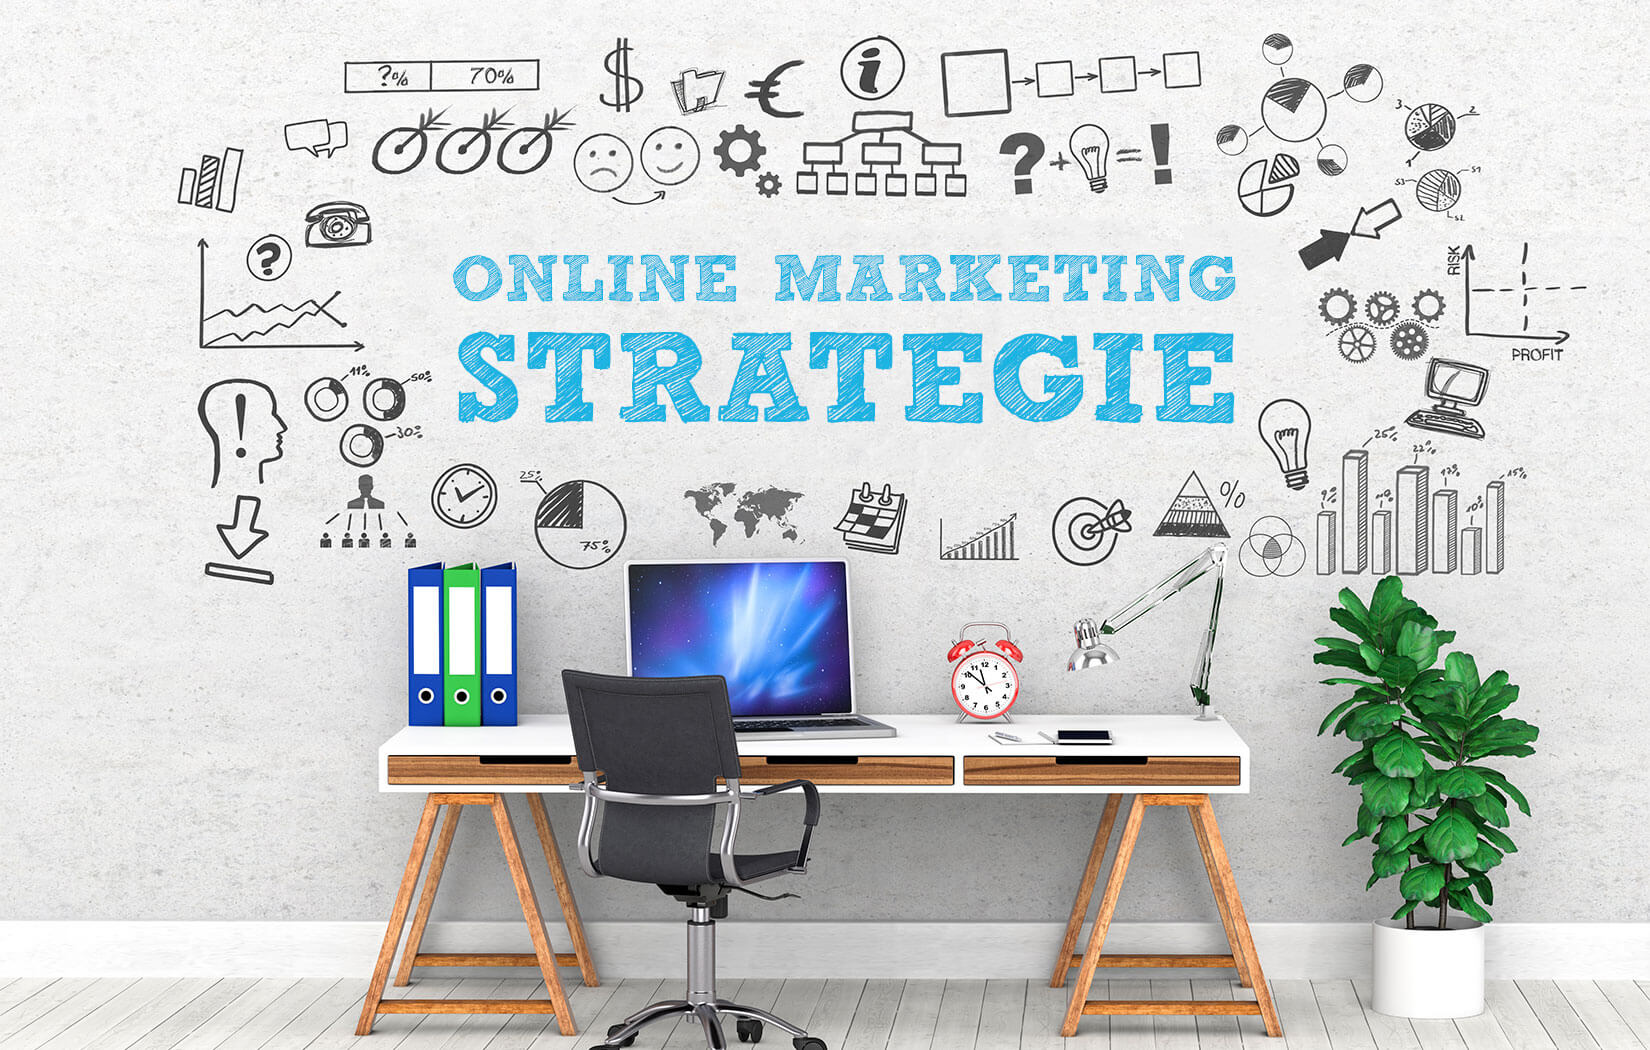 Was ist eine Online Marketing Strategie? | Online Marketing Heads